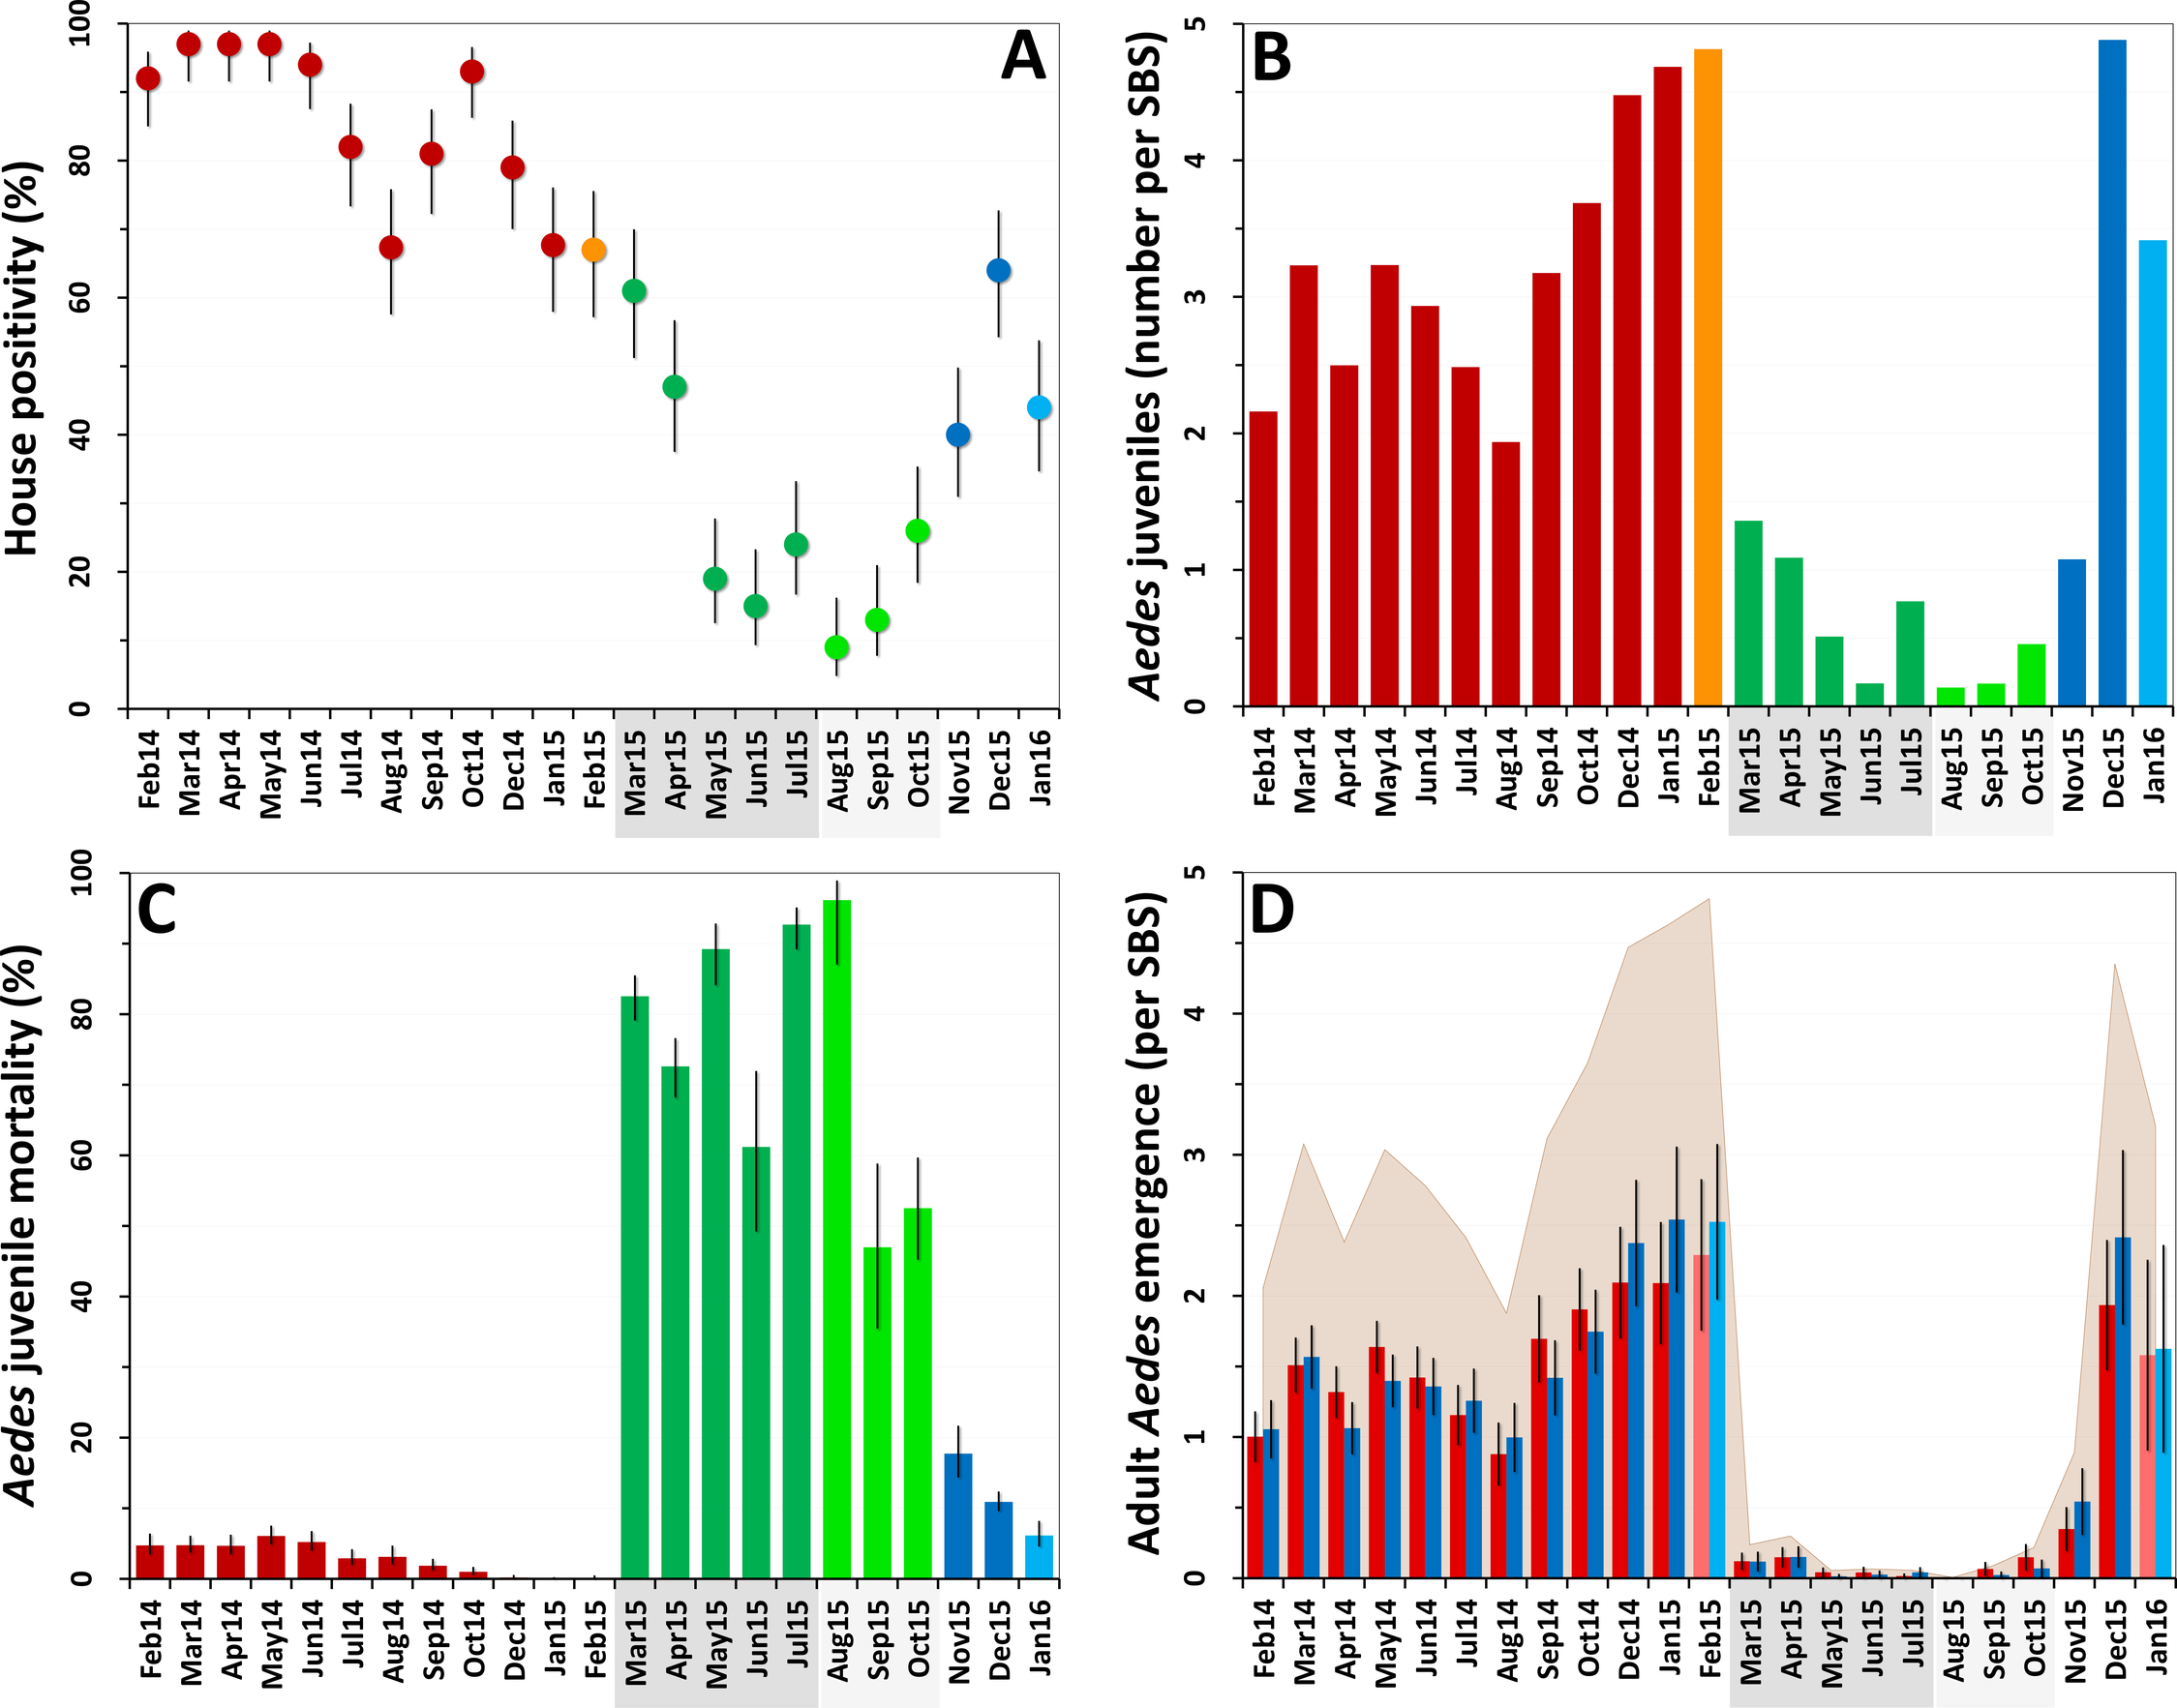 Changes in mosquito population metrics following deployment of mosquito-disseminated pyriproxyfen: descriptive graphs.